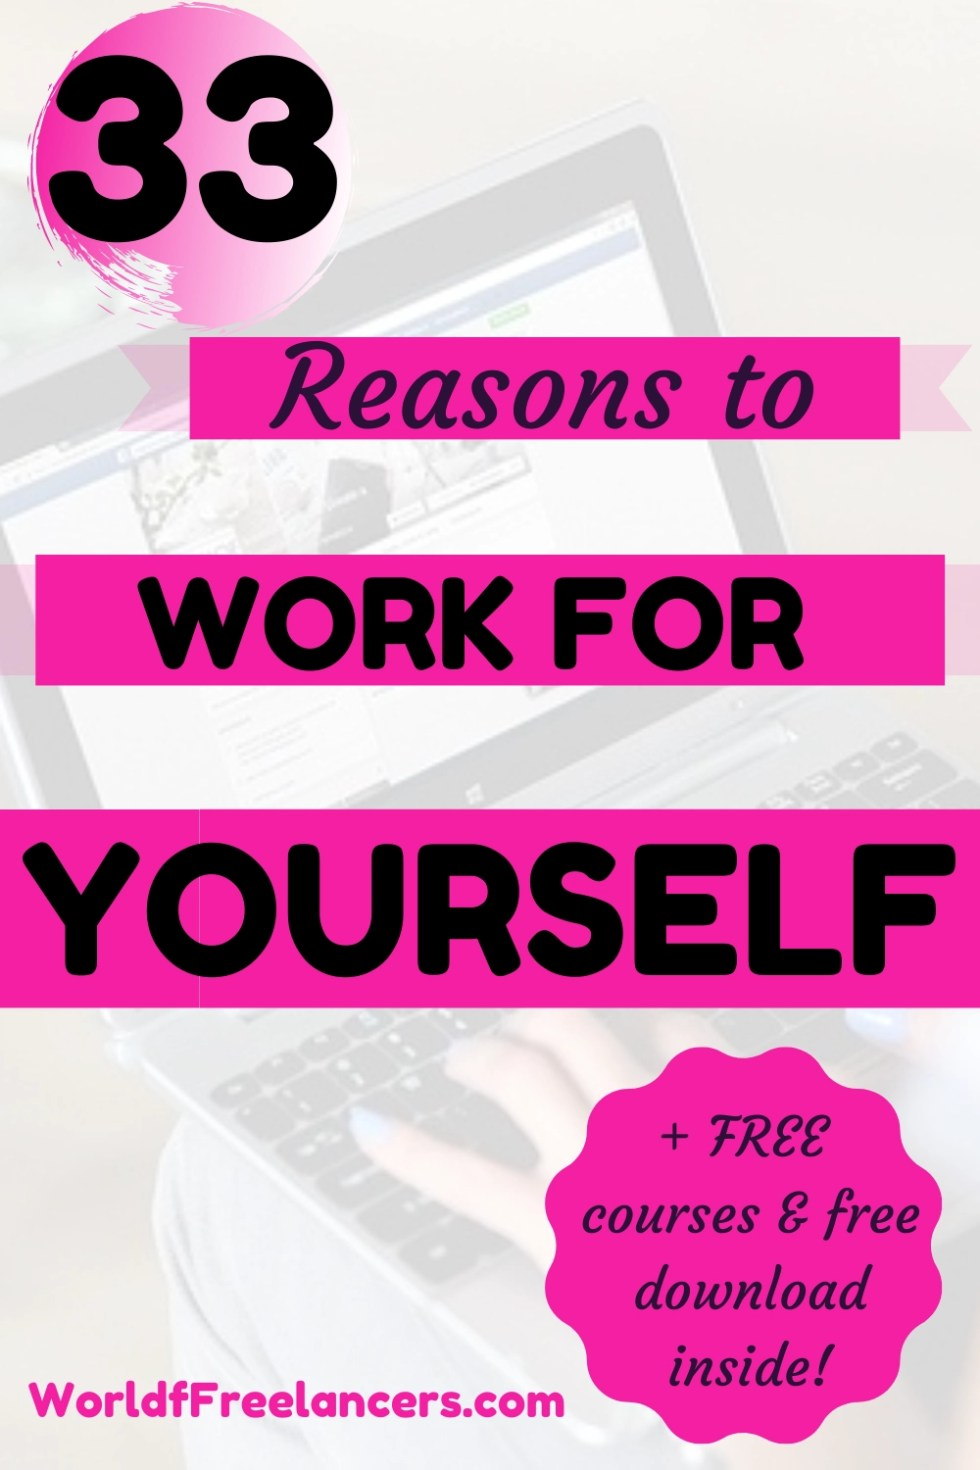 Pinterest image woman's hands on laptop in lap with text 33 reasons to work for yourself